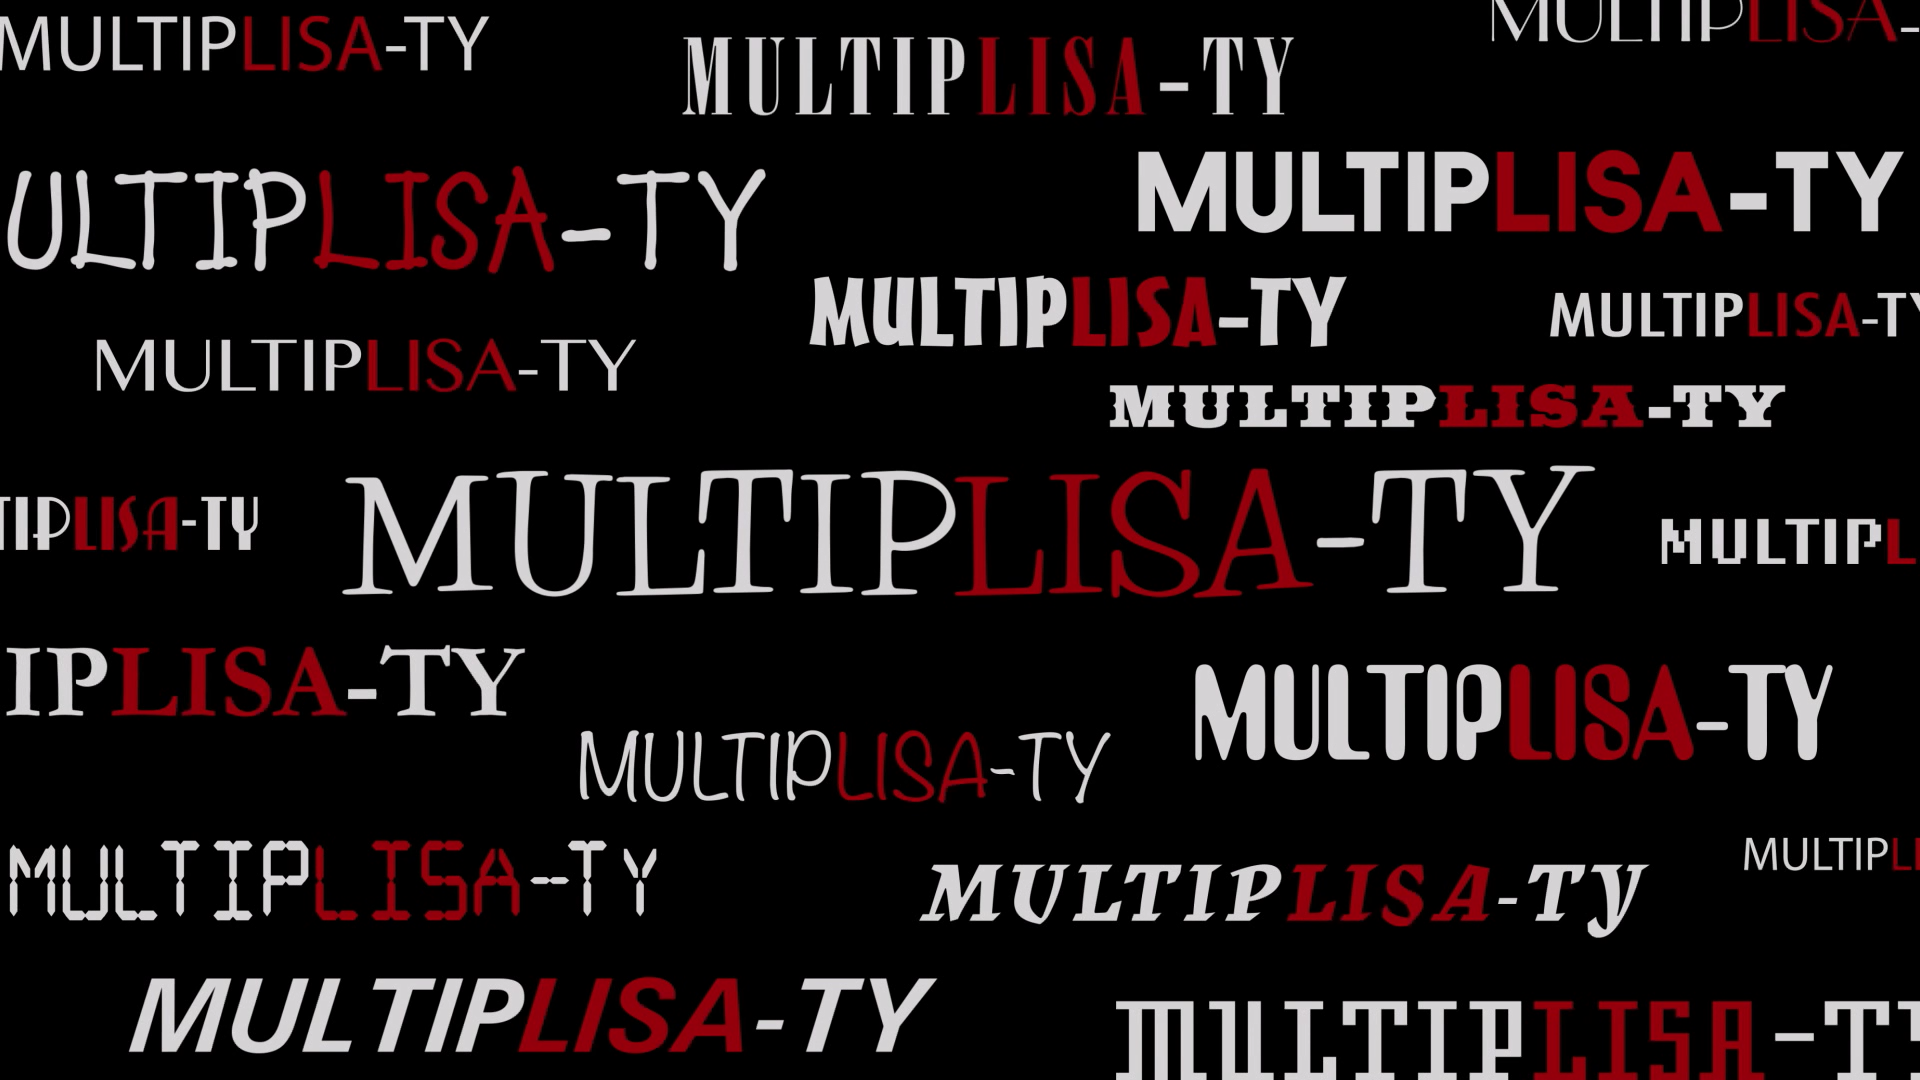 Multiplisa-ty title card.png